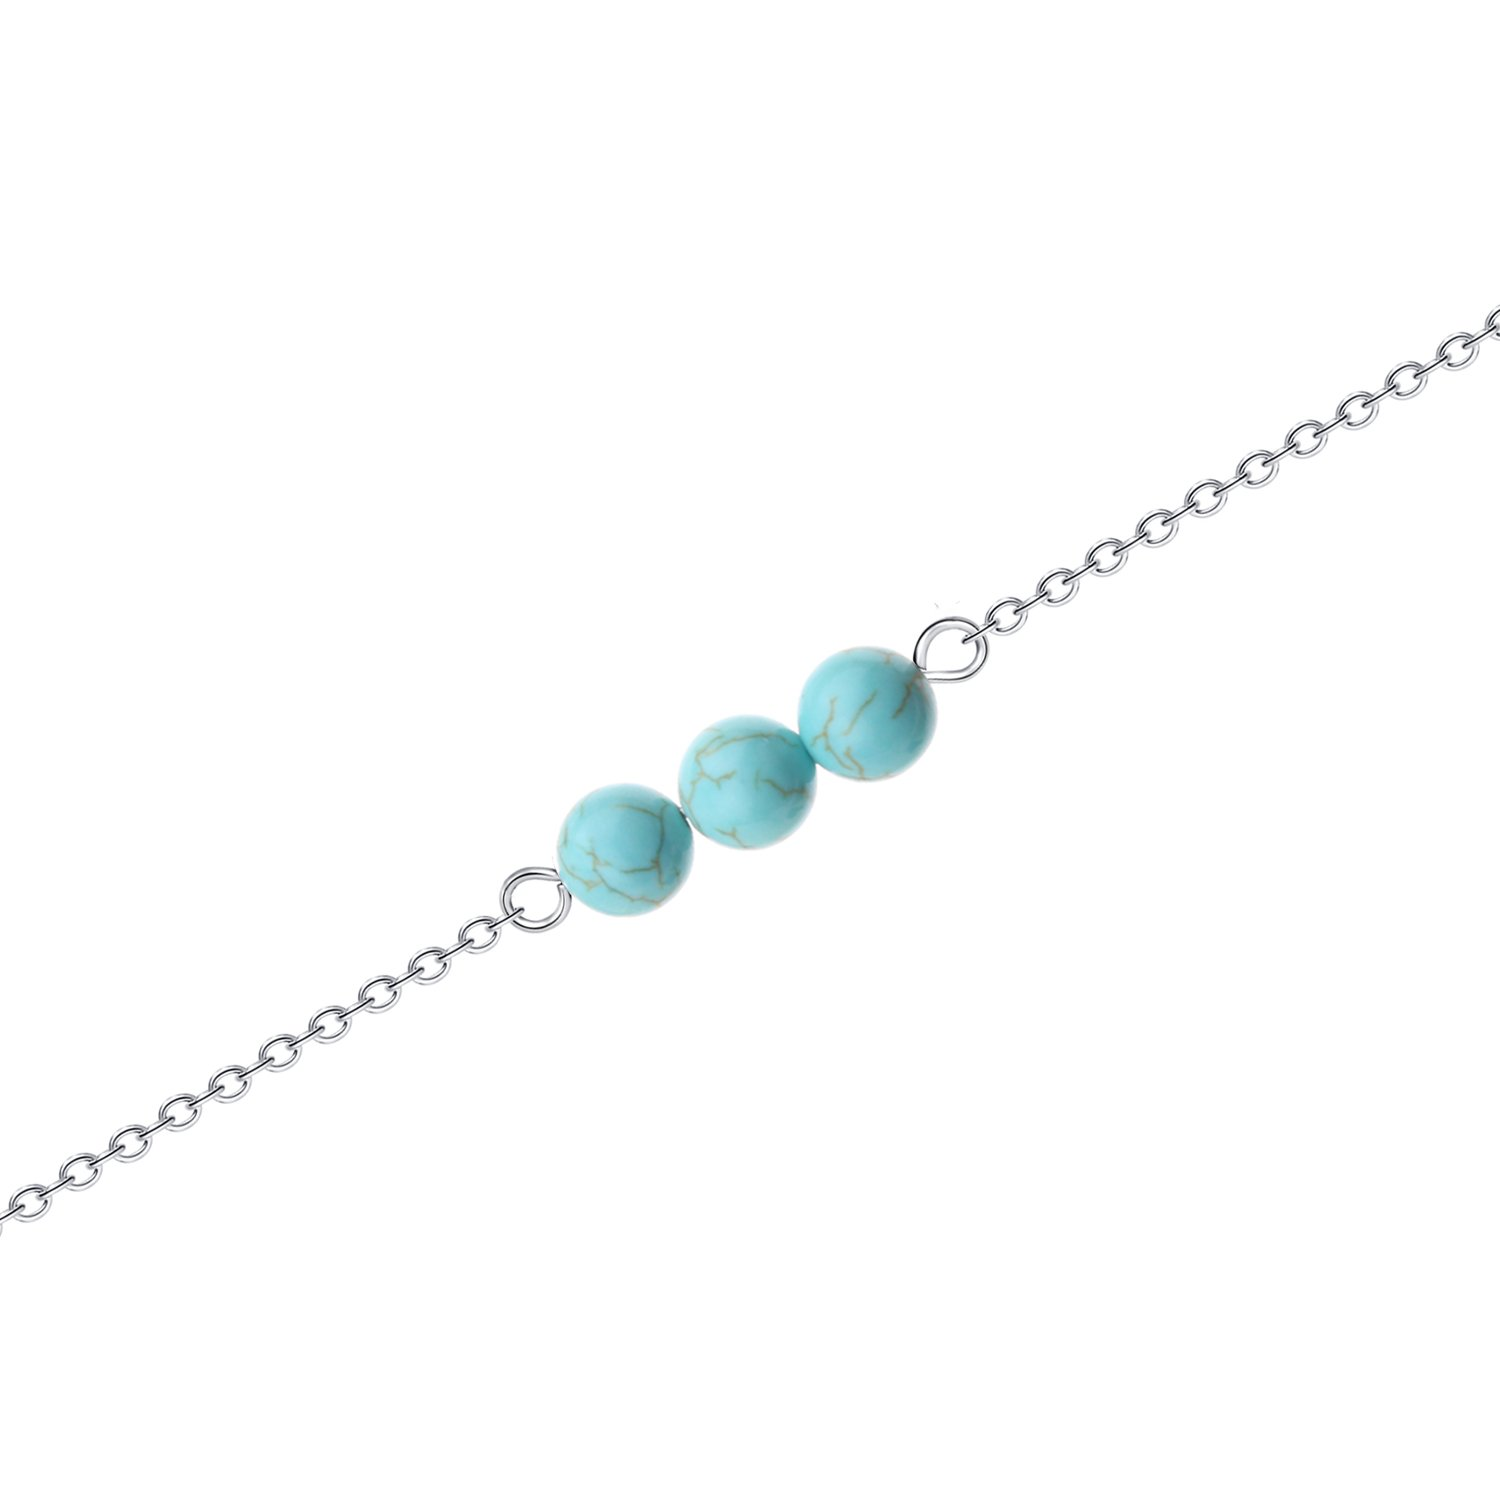 Tiny Real Turquoise Bead Necklace – Minimalist Small Healing Natural Thin Vintage Silver Simple Cute Genuine Pure Round Kids Ladies Turquoise Dainty Stone Bead Collar Necklace Jewelry Small for Kids